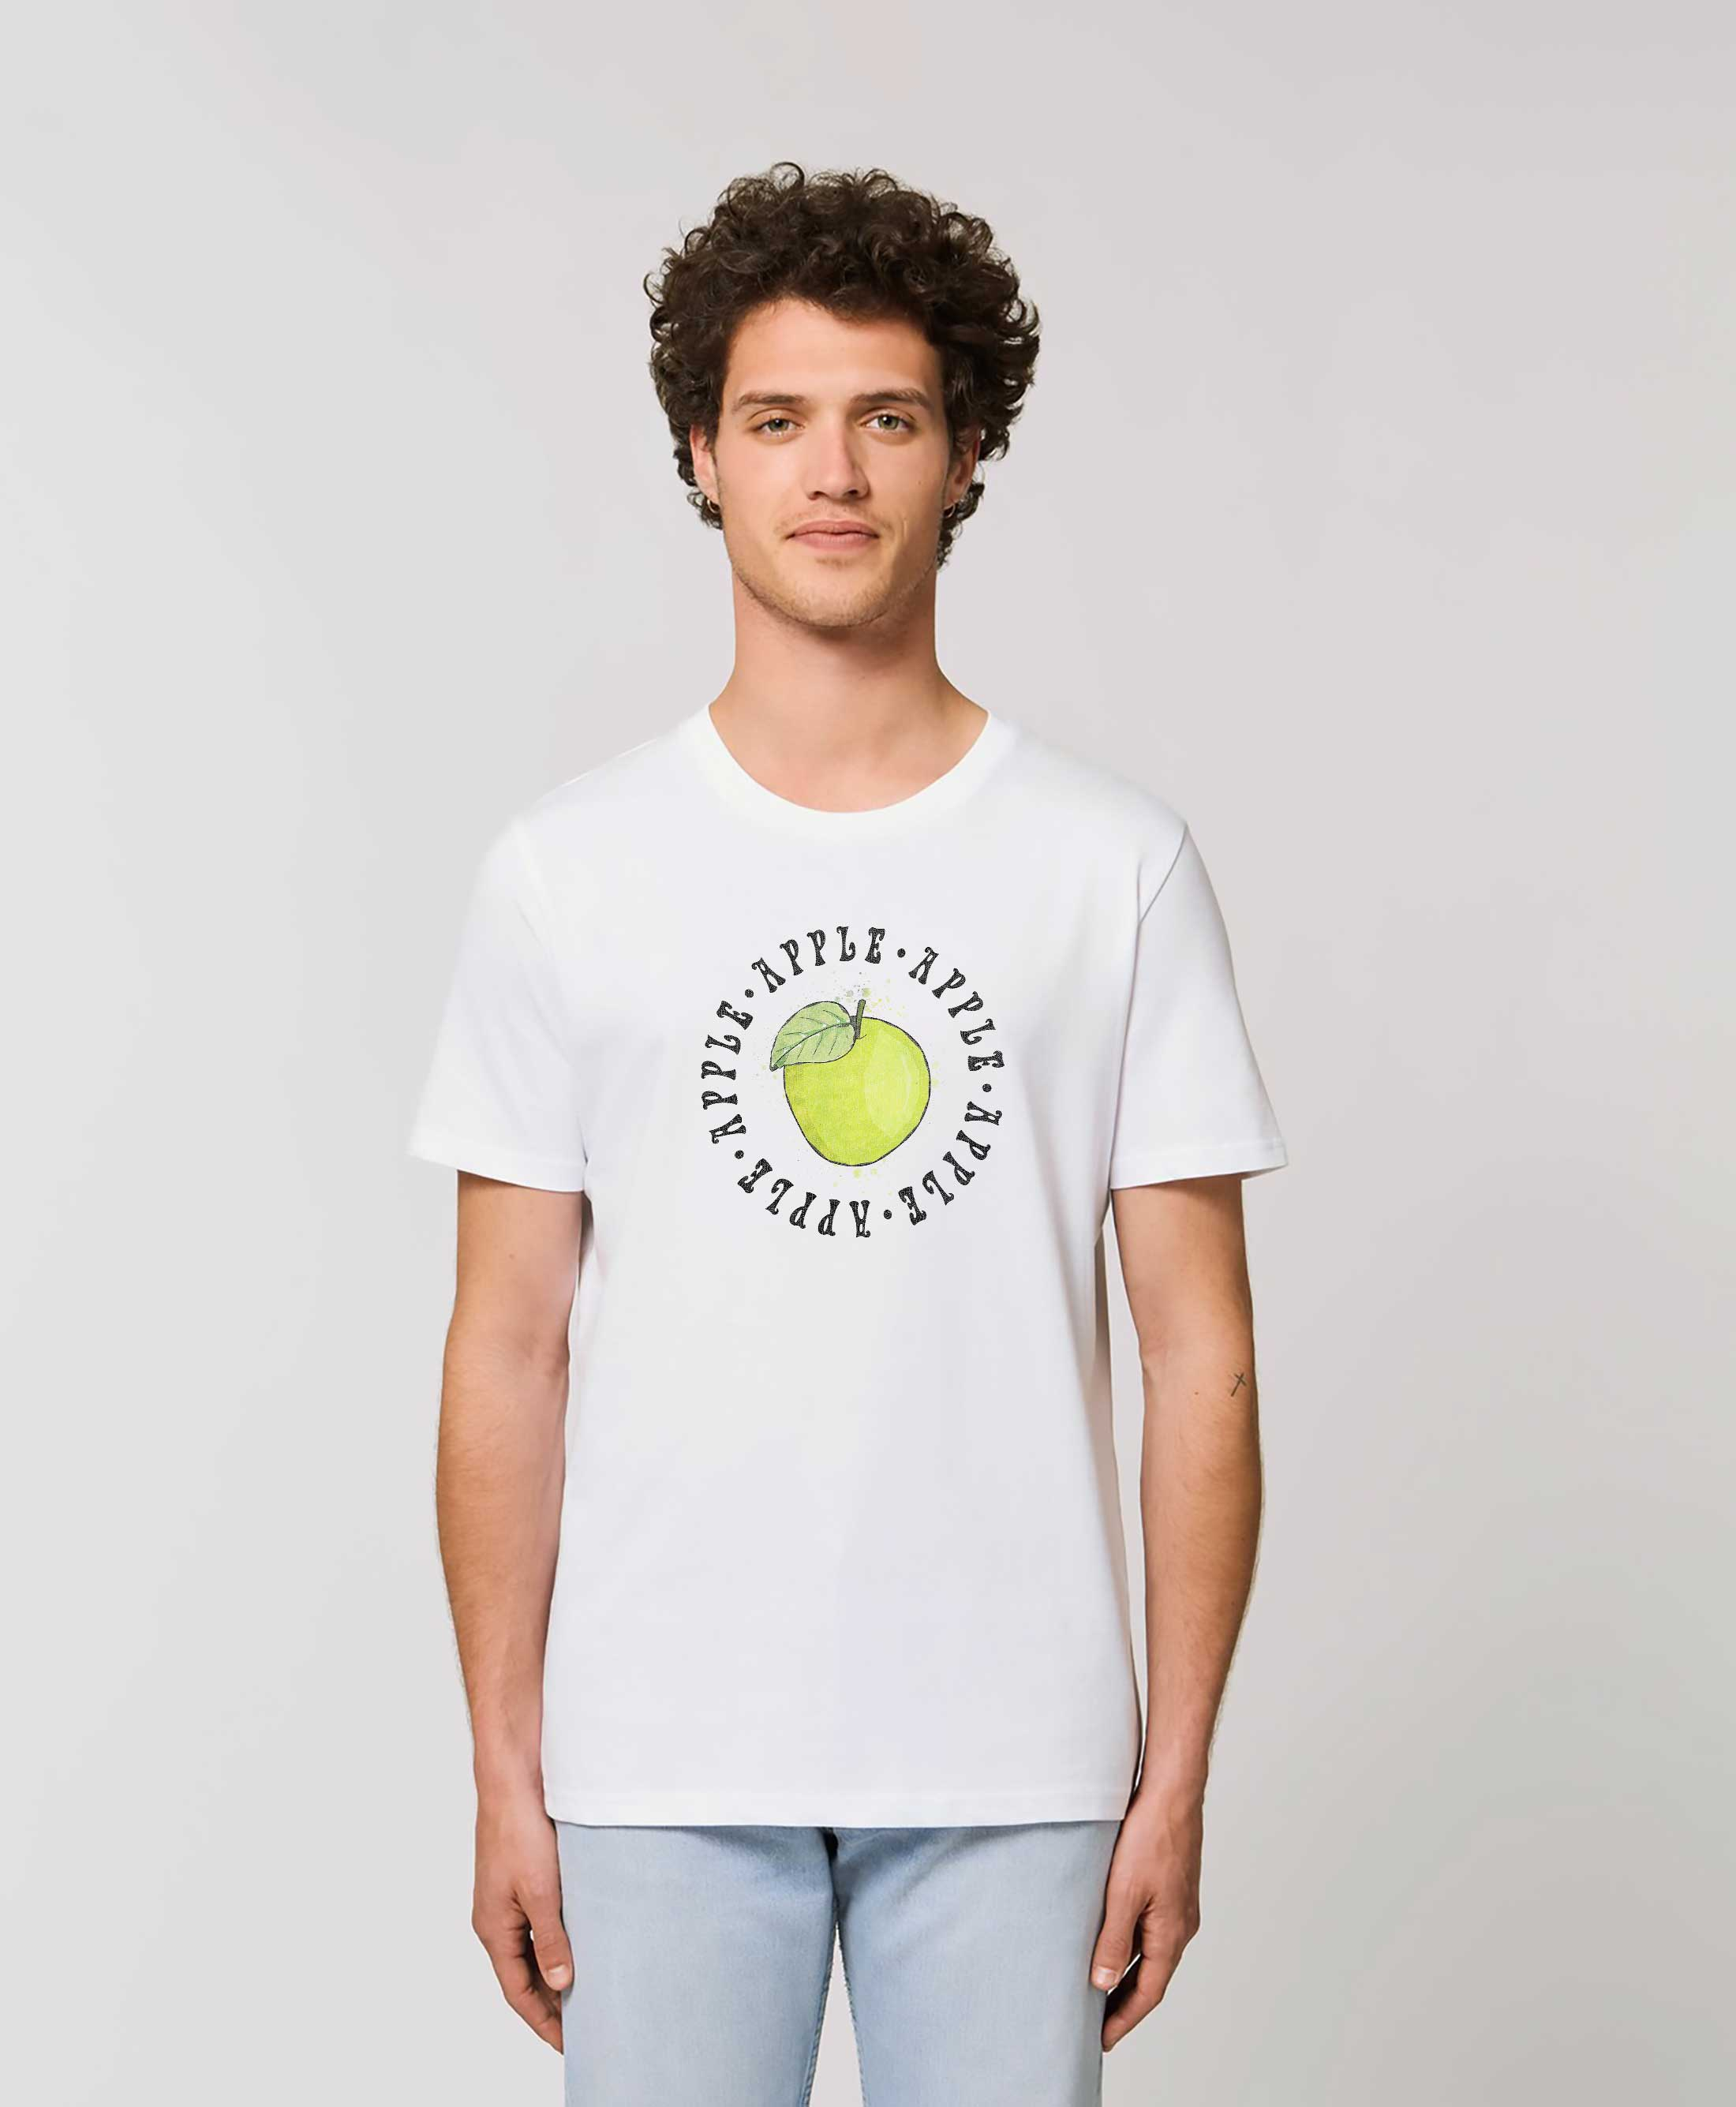 Apple T Shirt 2020